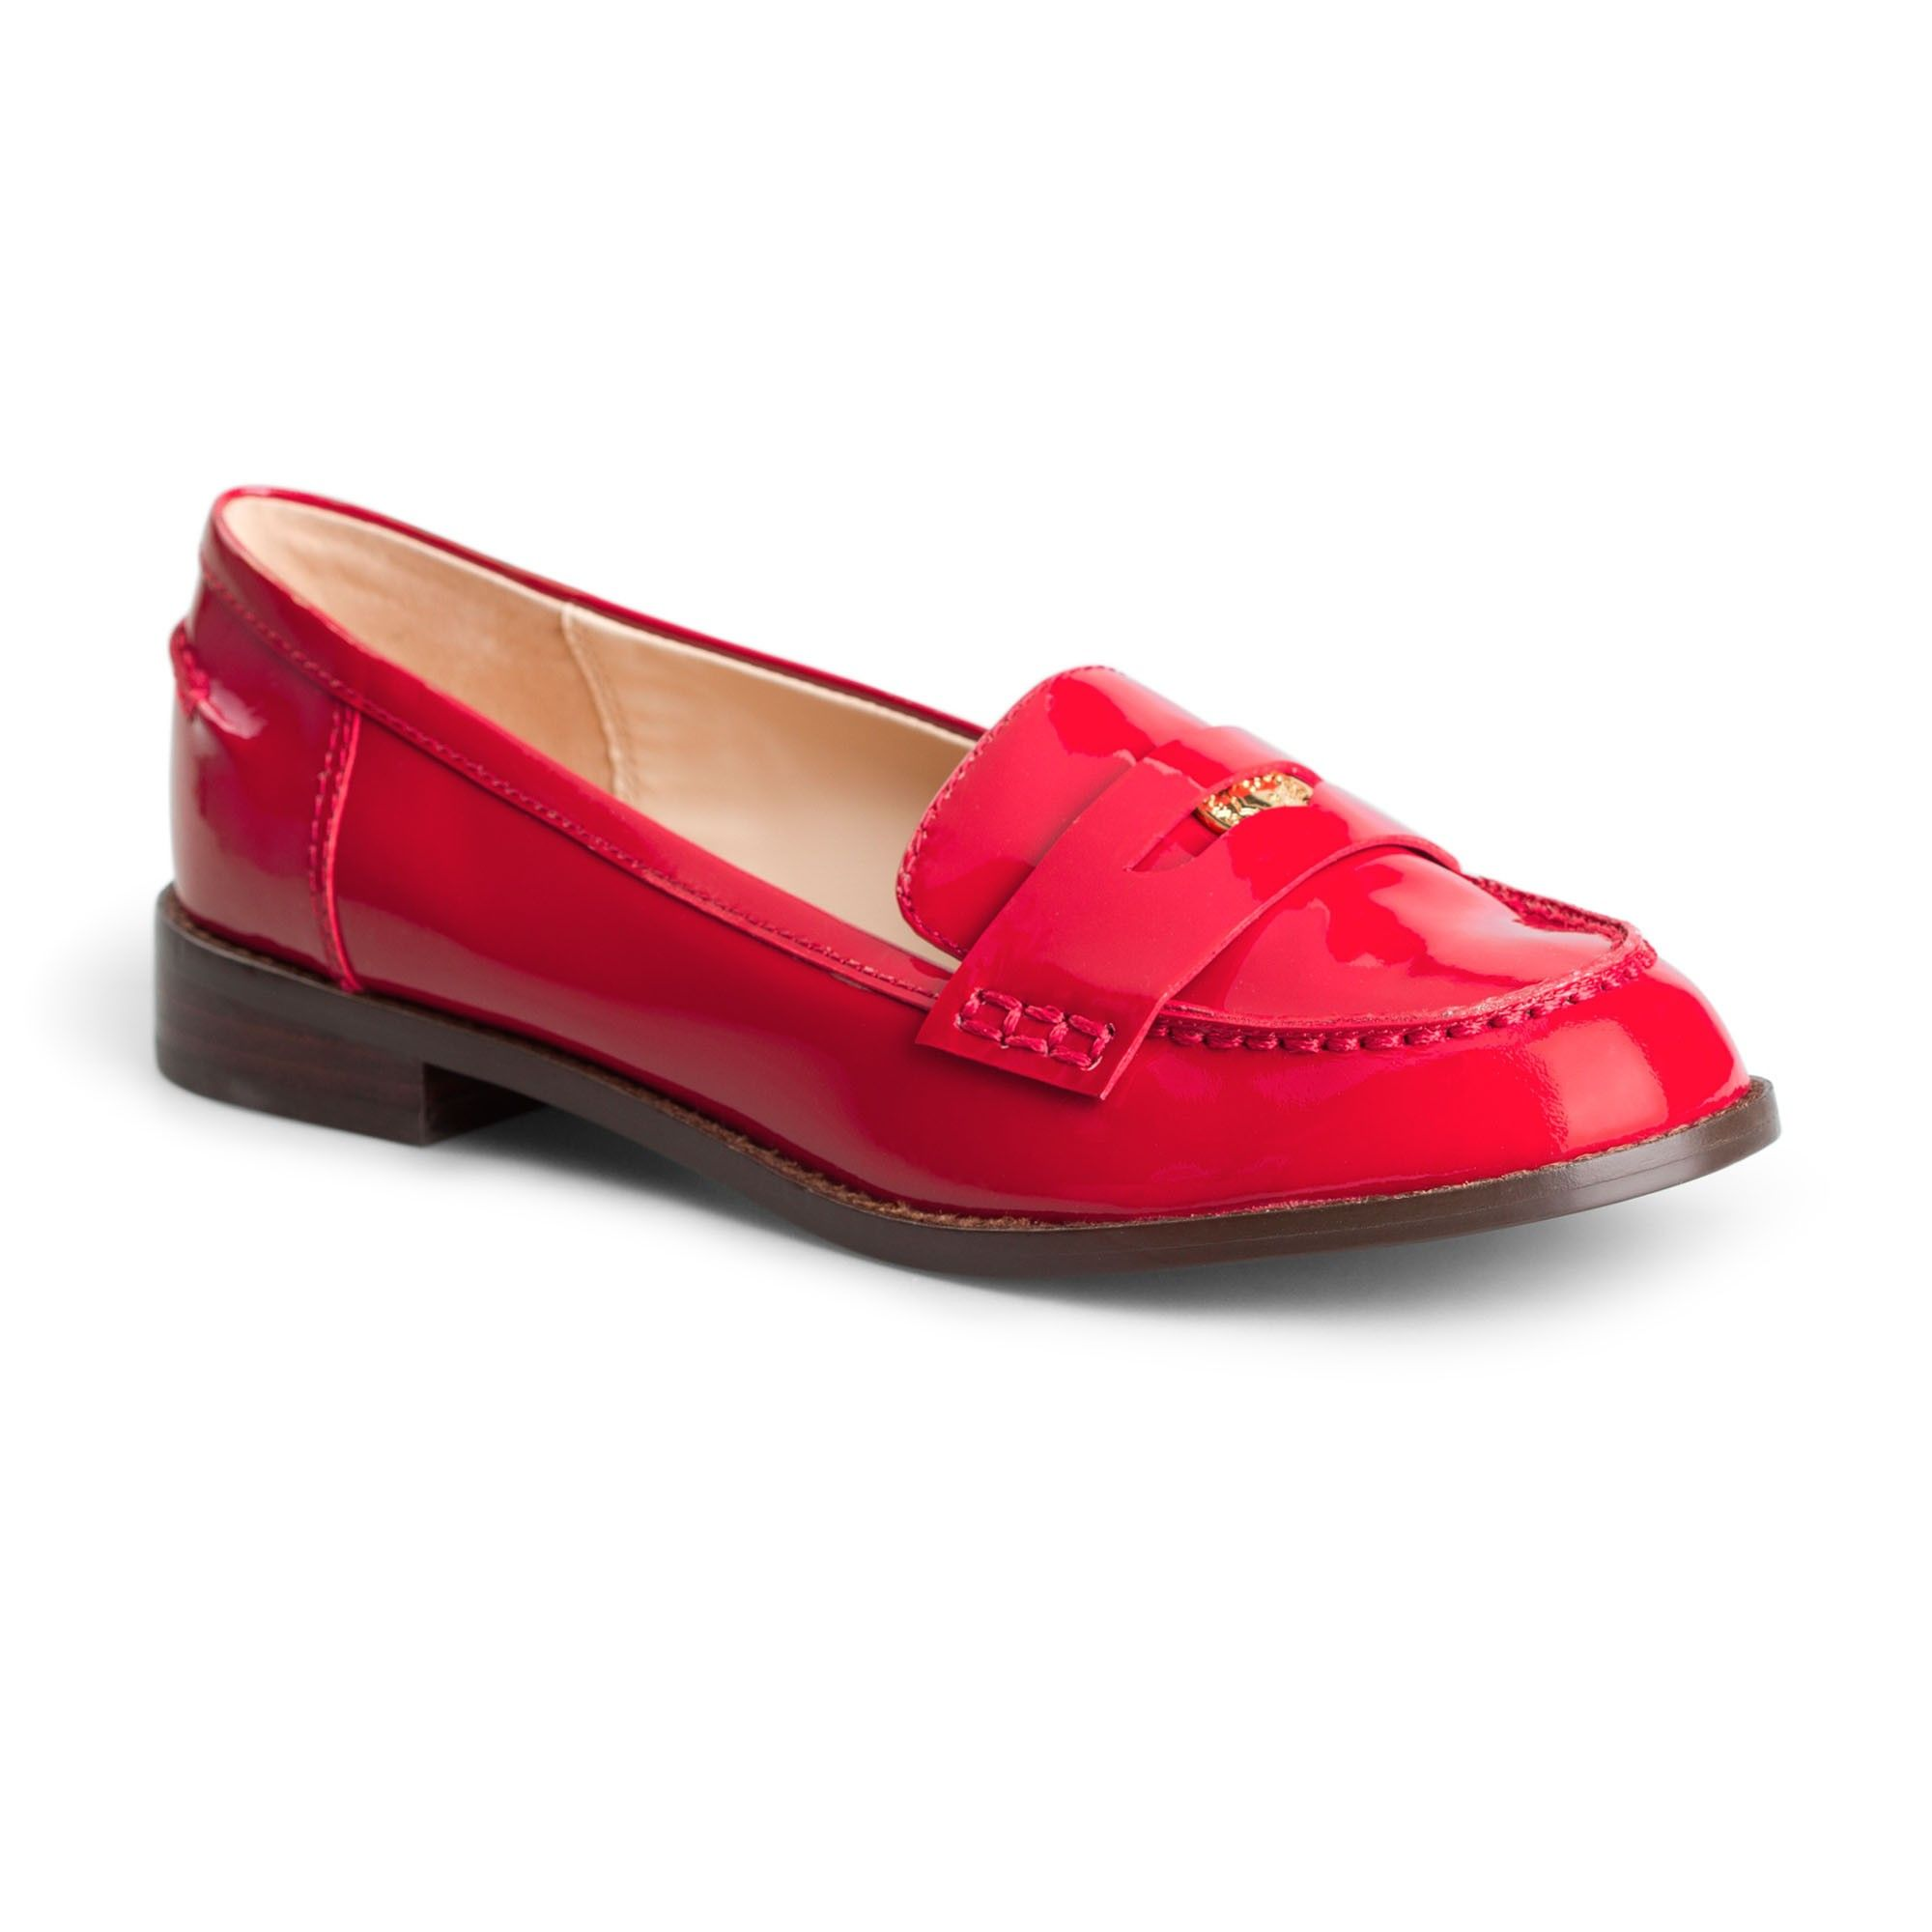 e1a980bf5ed  C. Wonder  C. Wonder Women s Penny Loafers - Patent Leather Signature Penny  Loafer